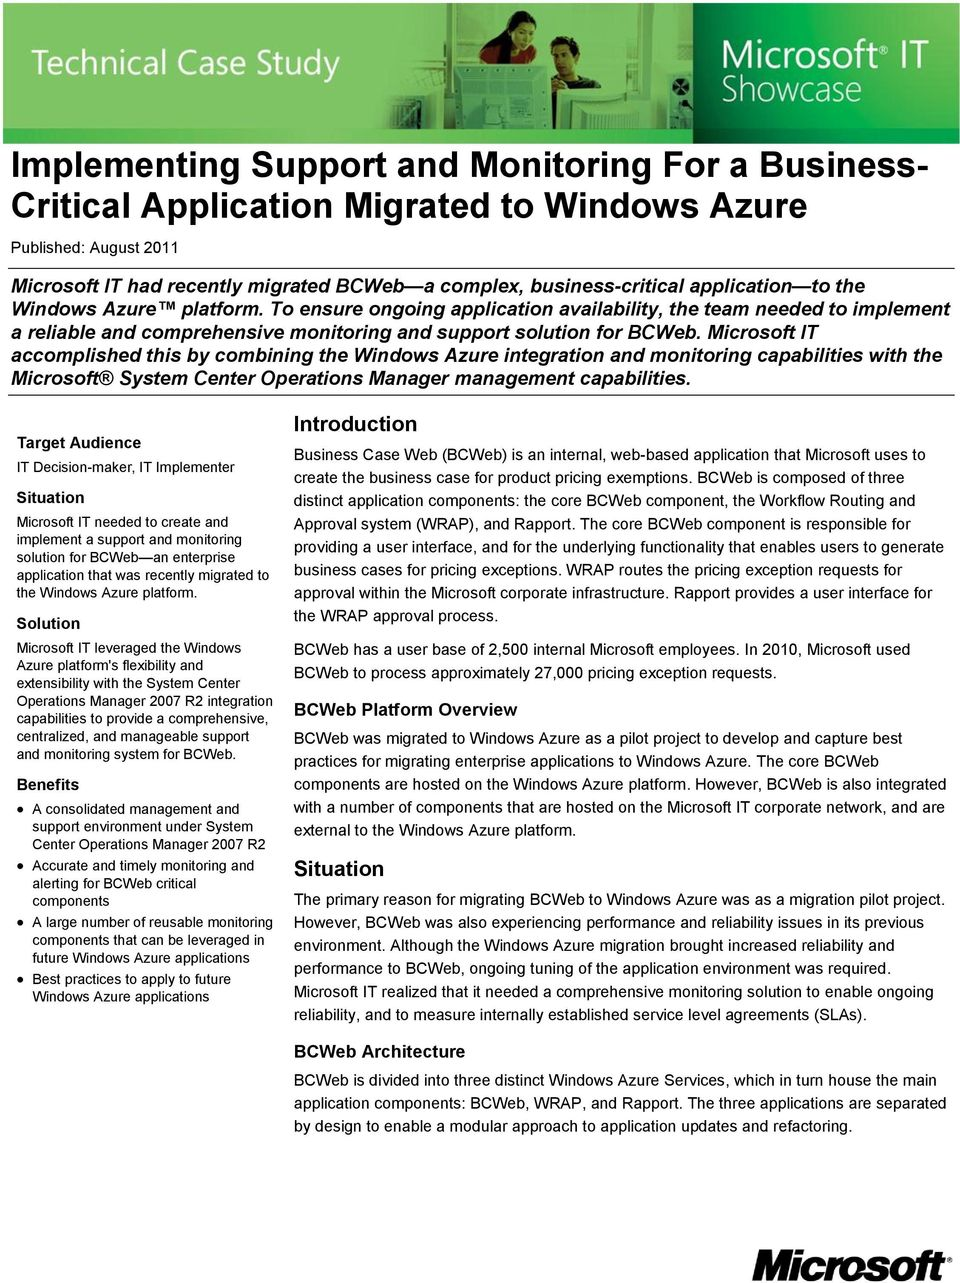 Microsoft IT accomplished this by combining the Windows Azure integration and monitoring capabilities with the Microsoft System Center Operations Manager management capabilities.